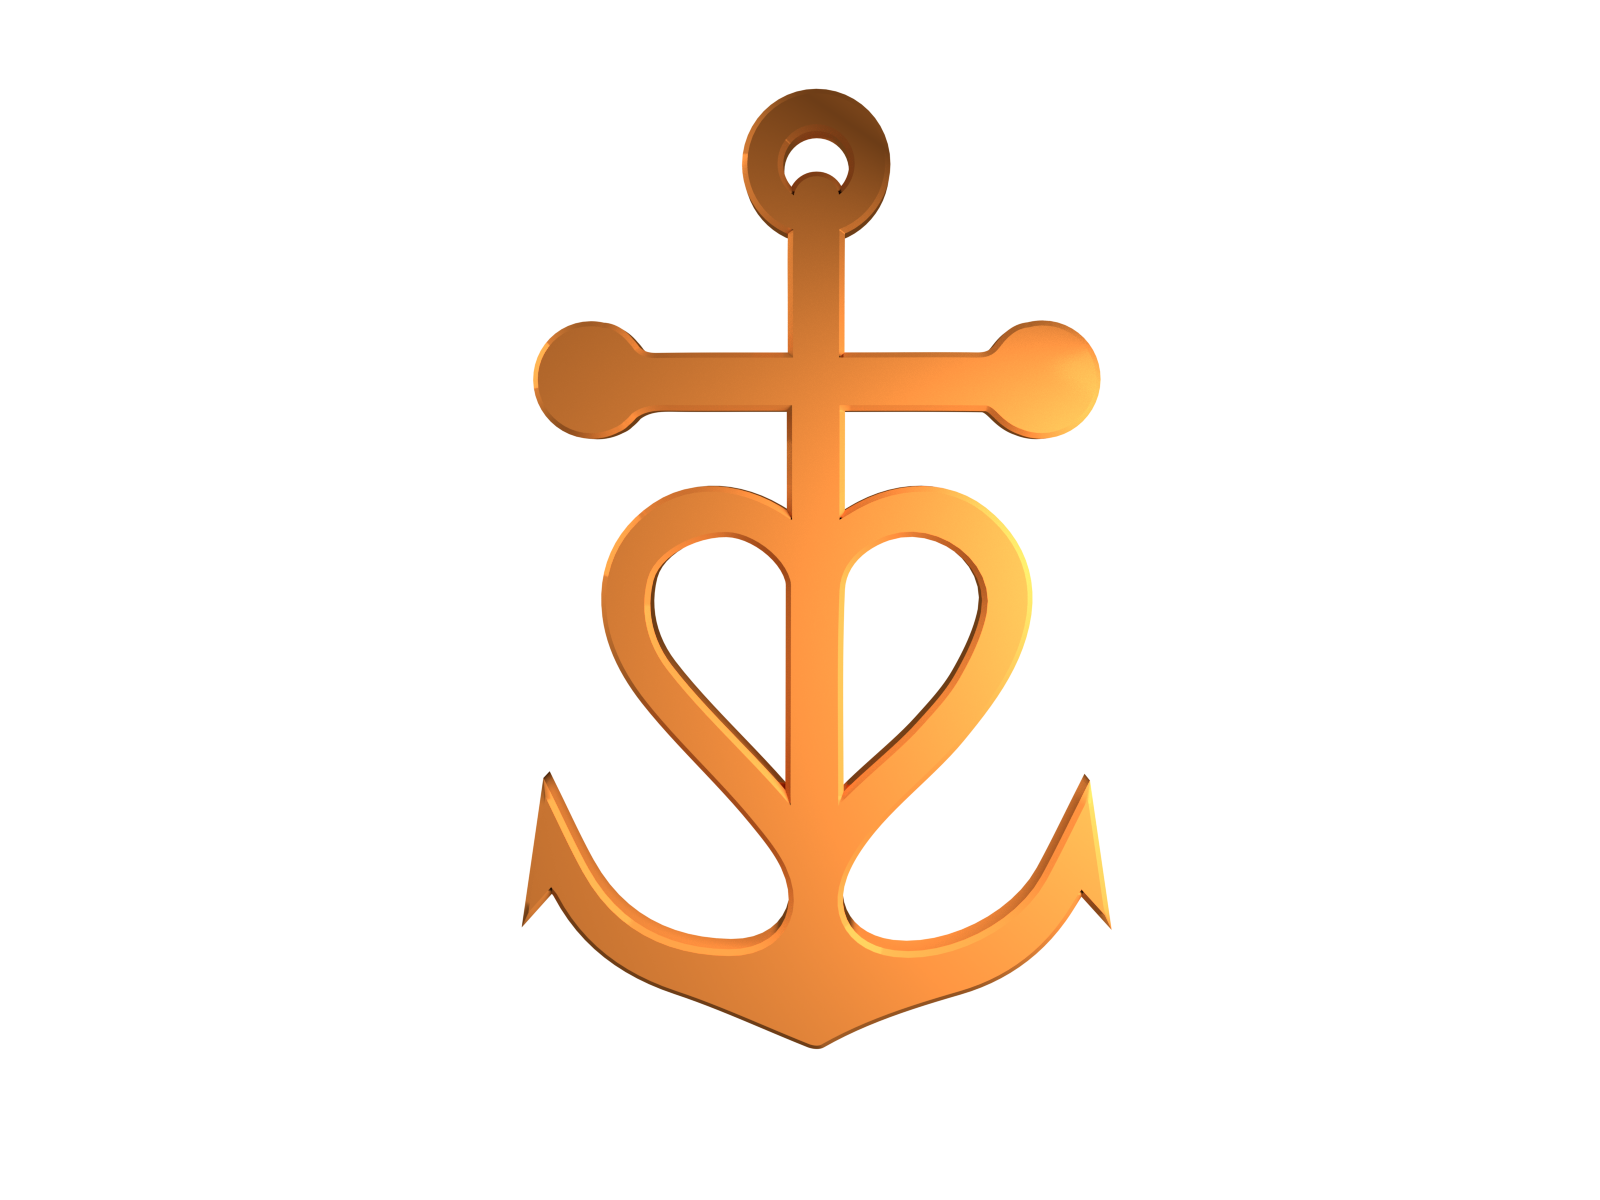 PNG PARK - High Res PNG Files: Christian Anchor Symbol 3D